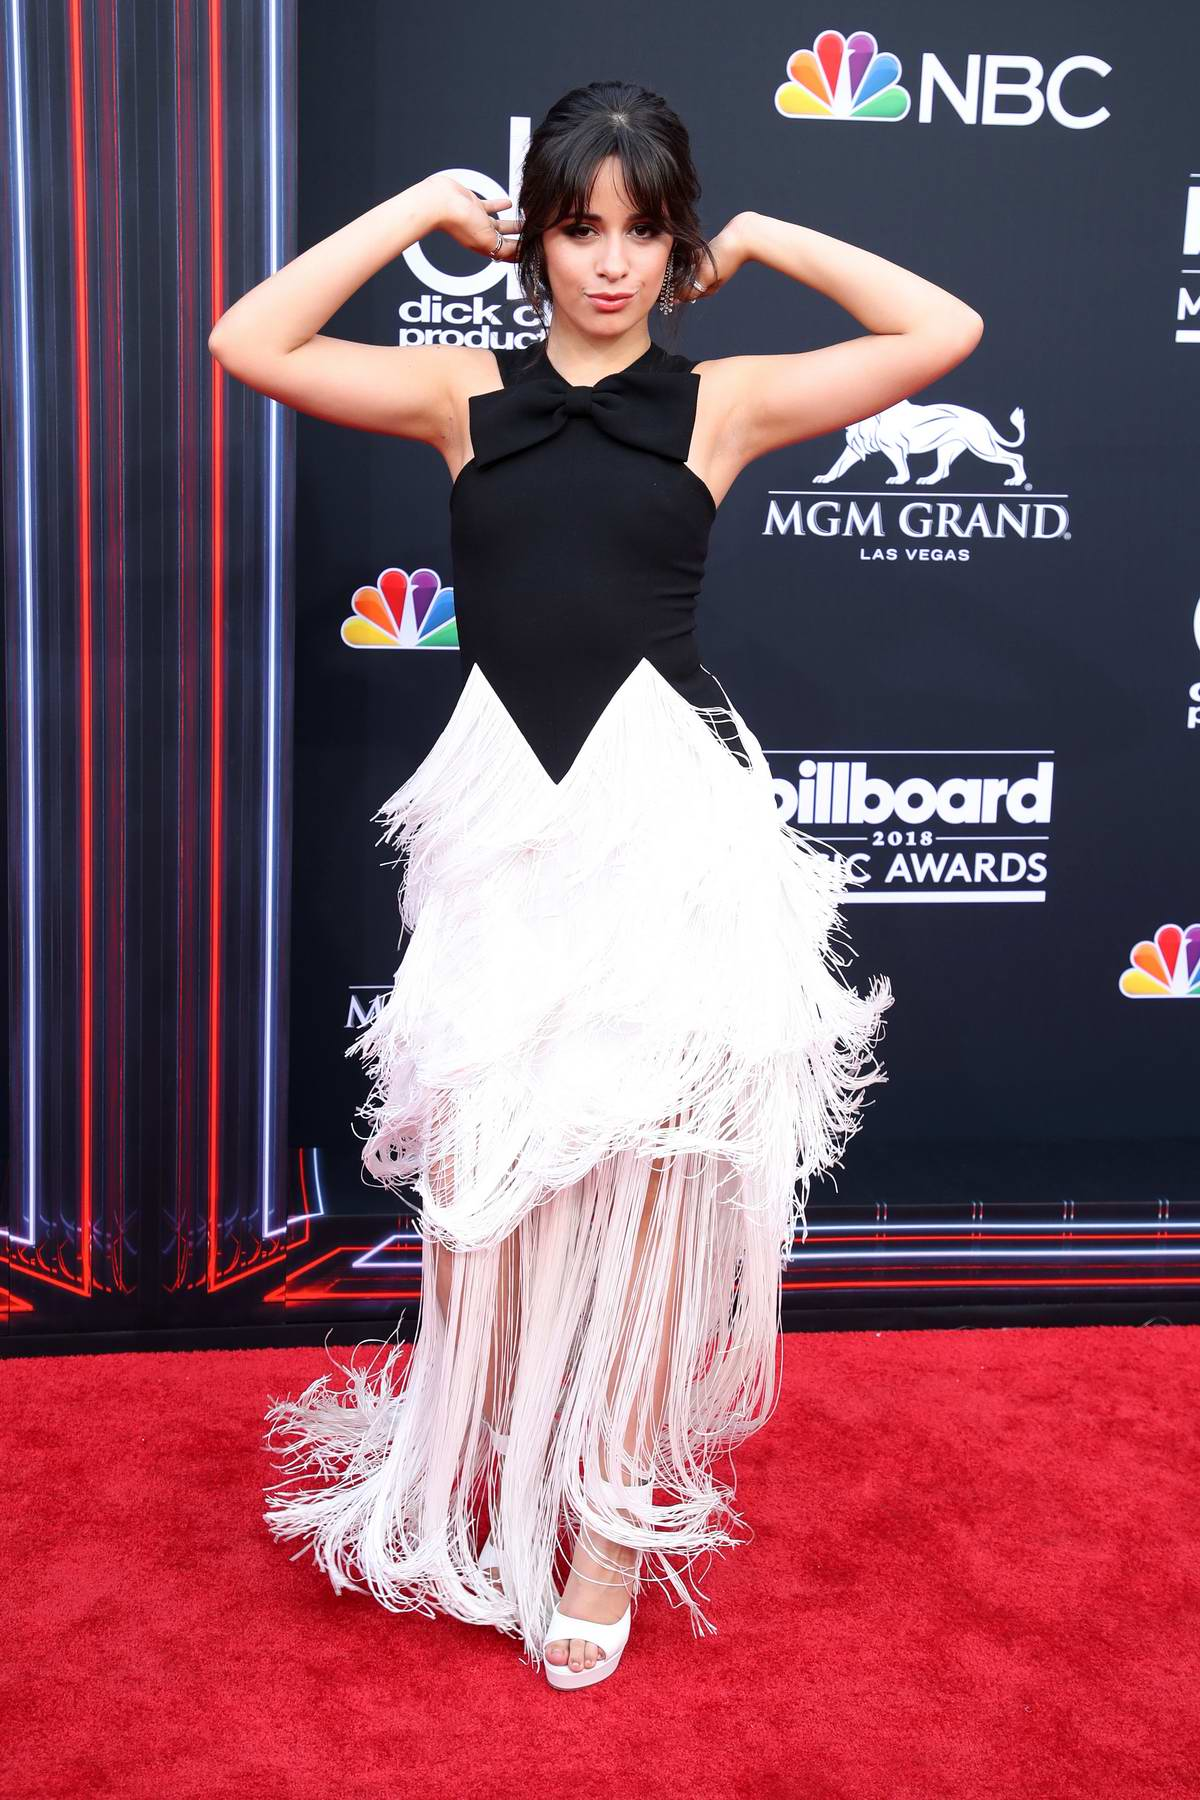 Camila Cabello attends the 2018 Billboard Music Awards at MGM Grand Garden in Las Vegas, Nevada